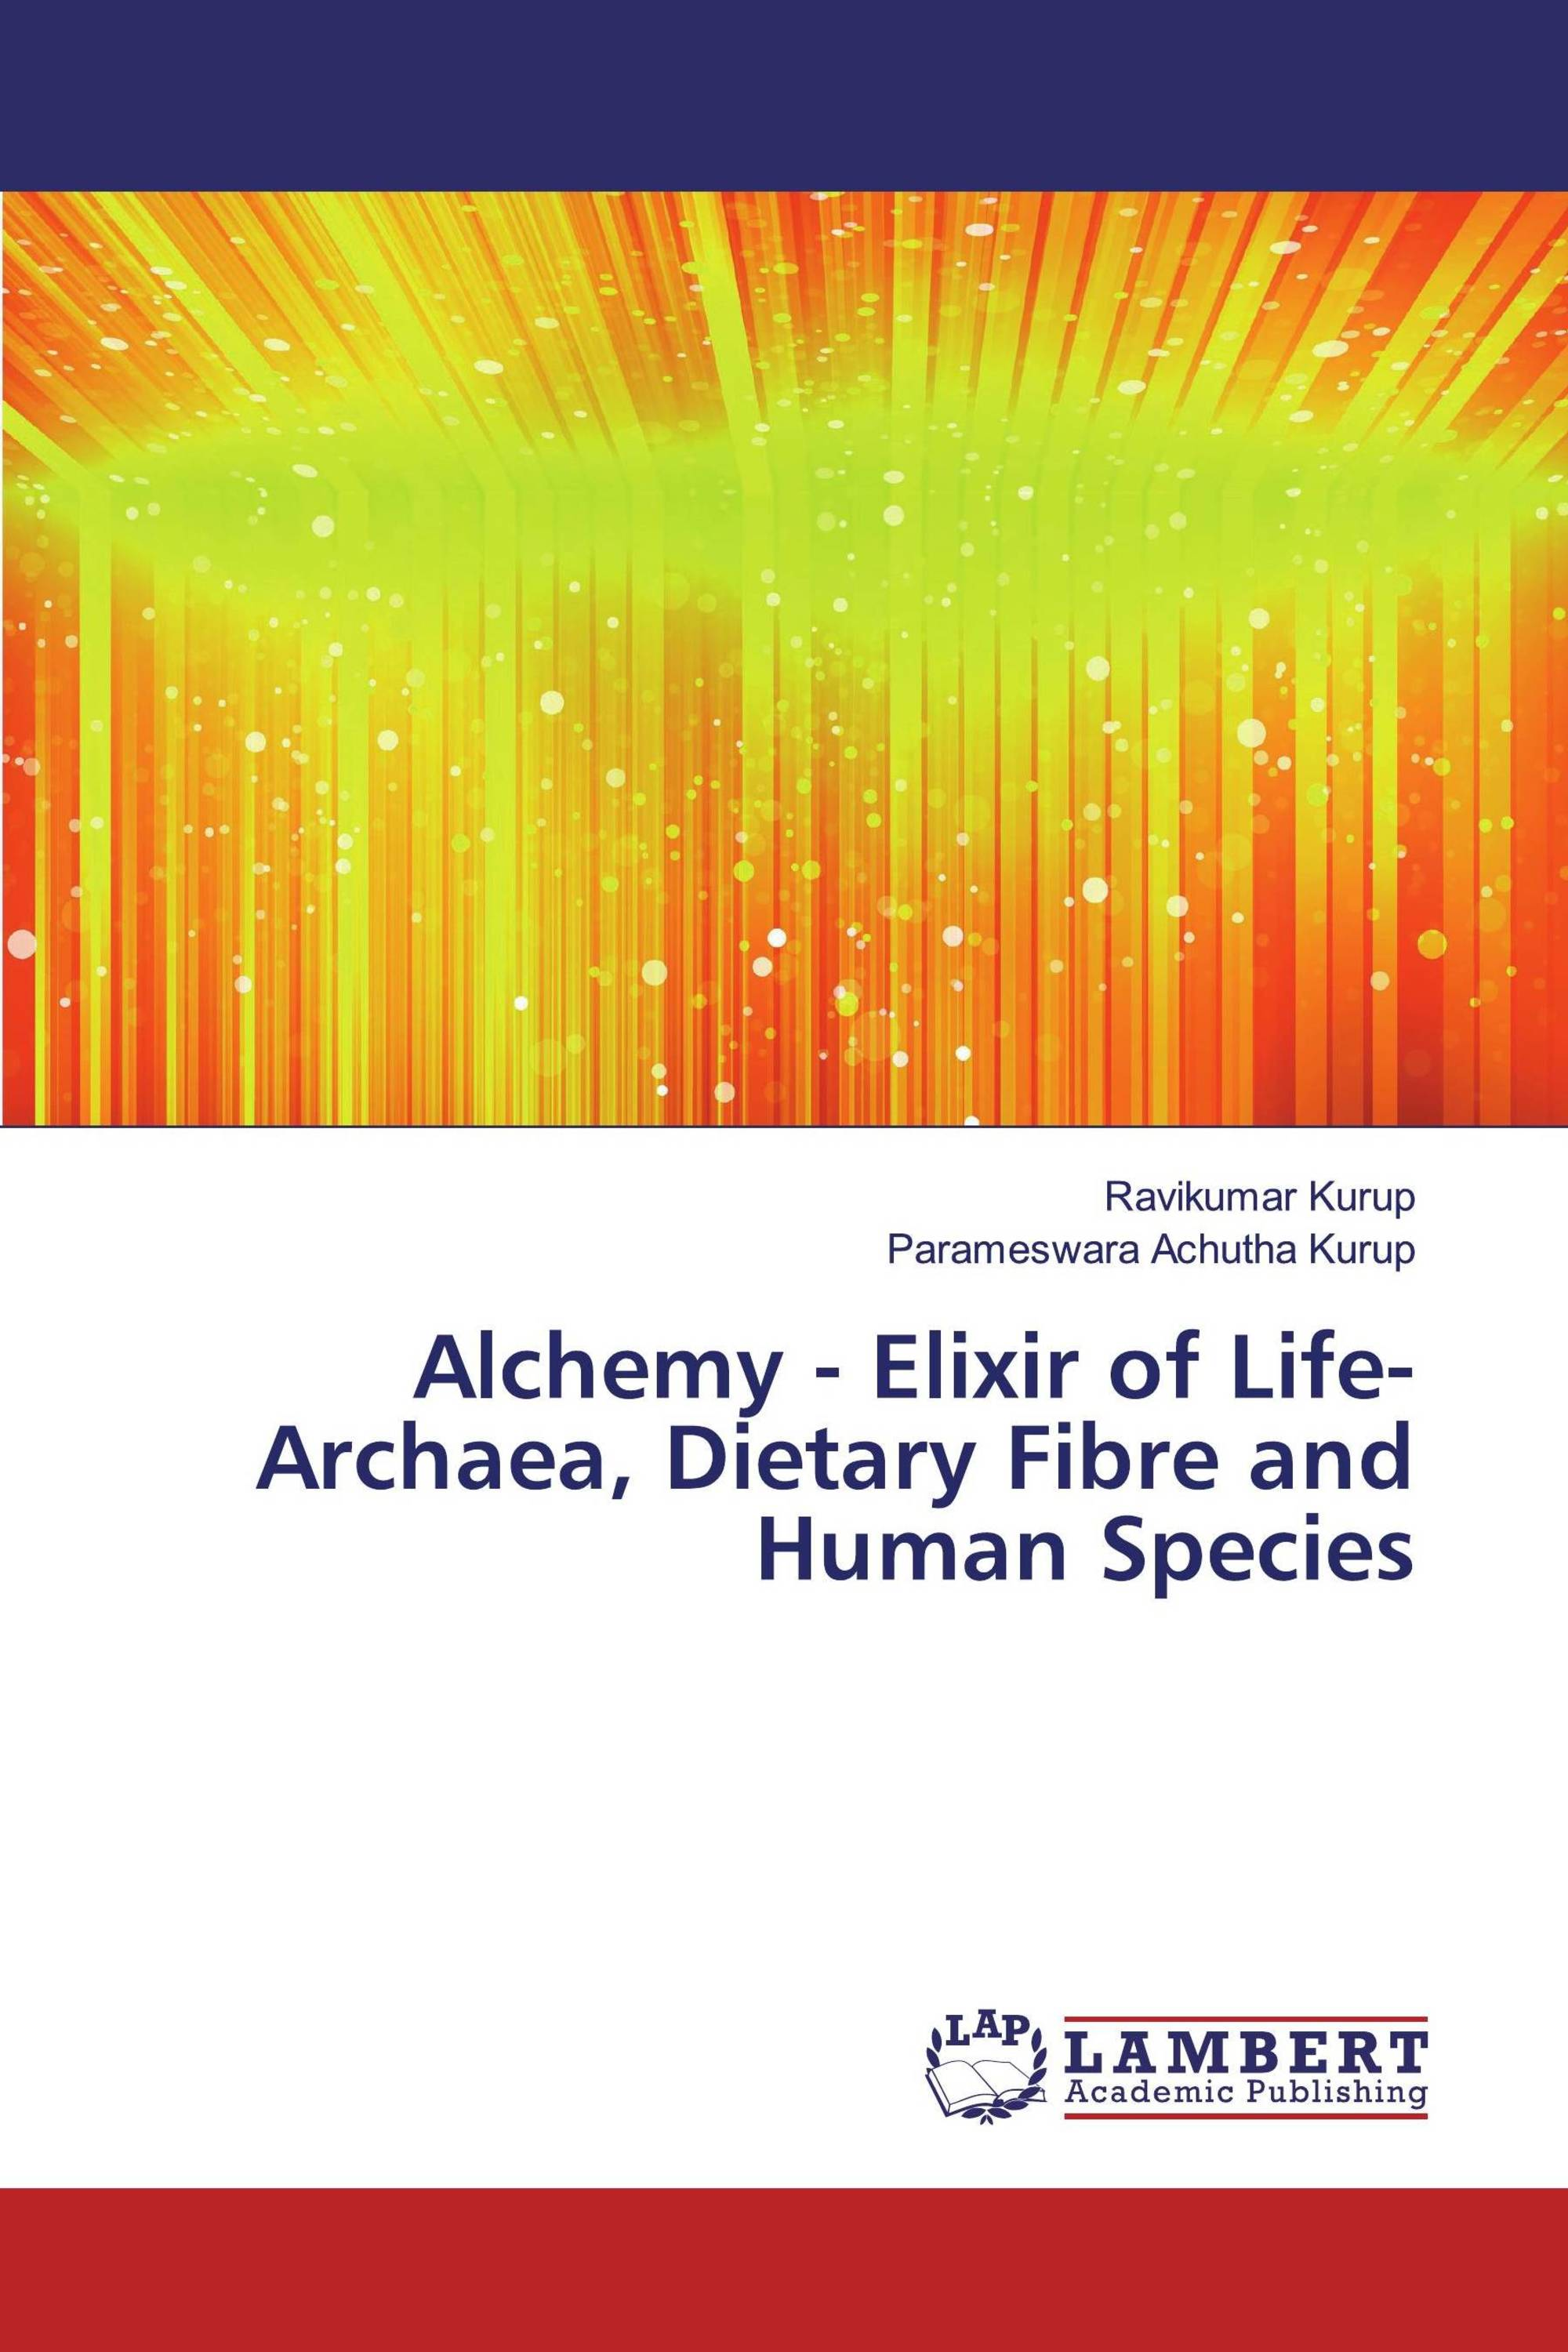 Alchemy - Elixir of Life- Archaea, Dietary Fibre and Human Species